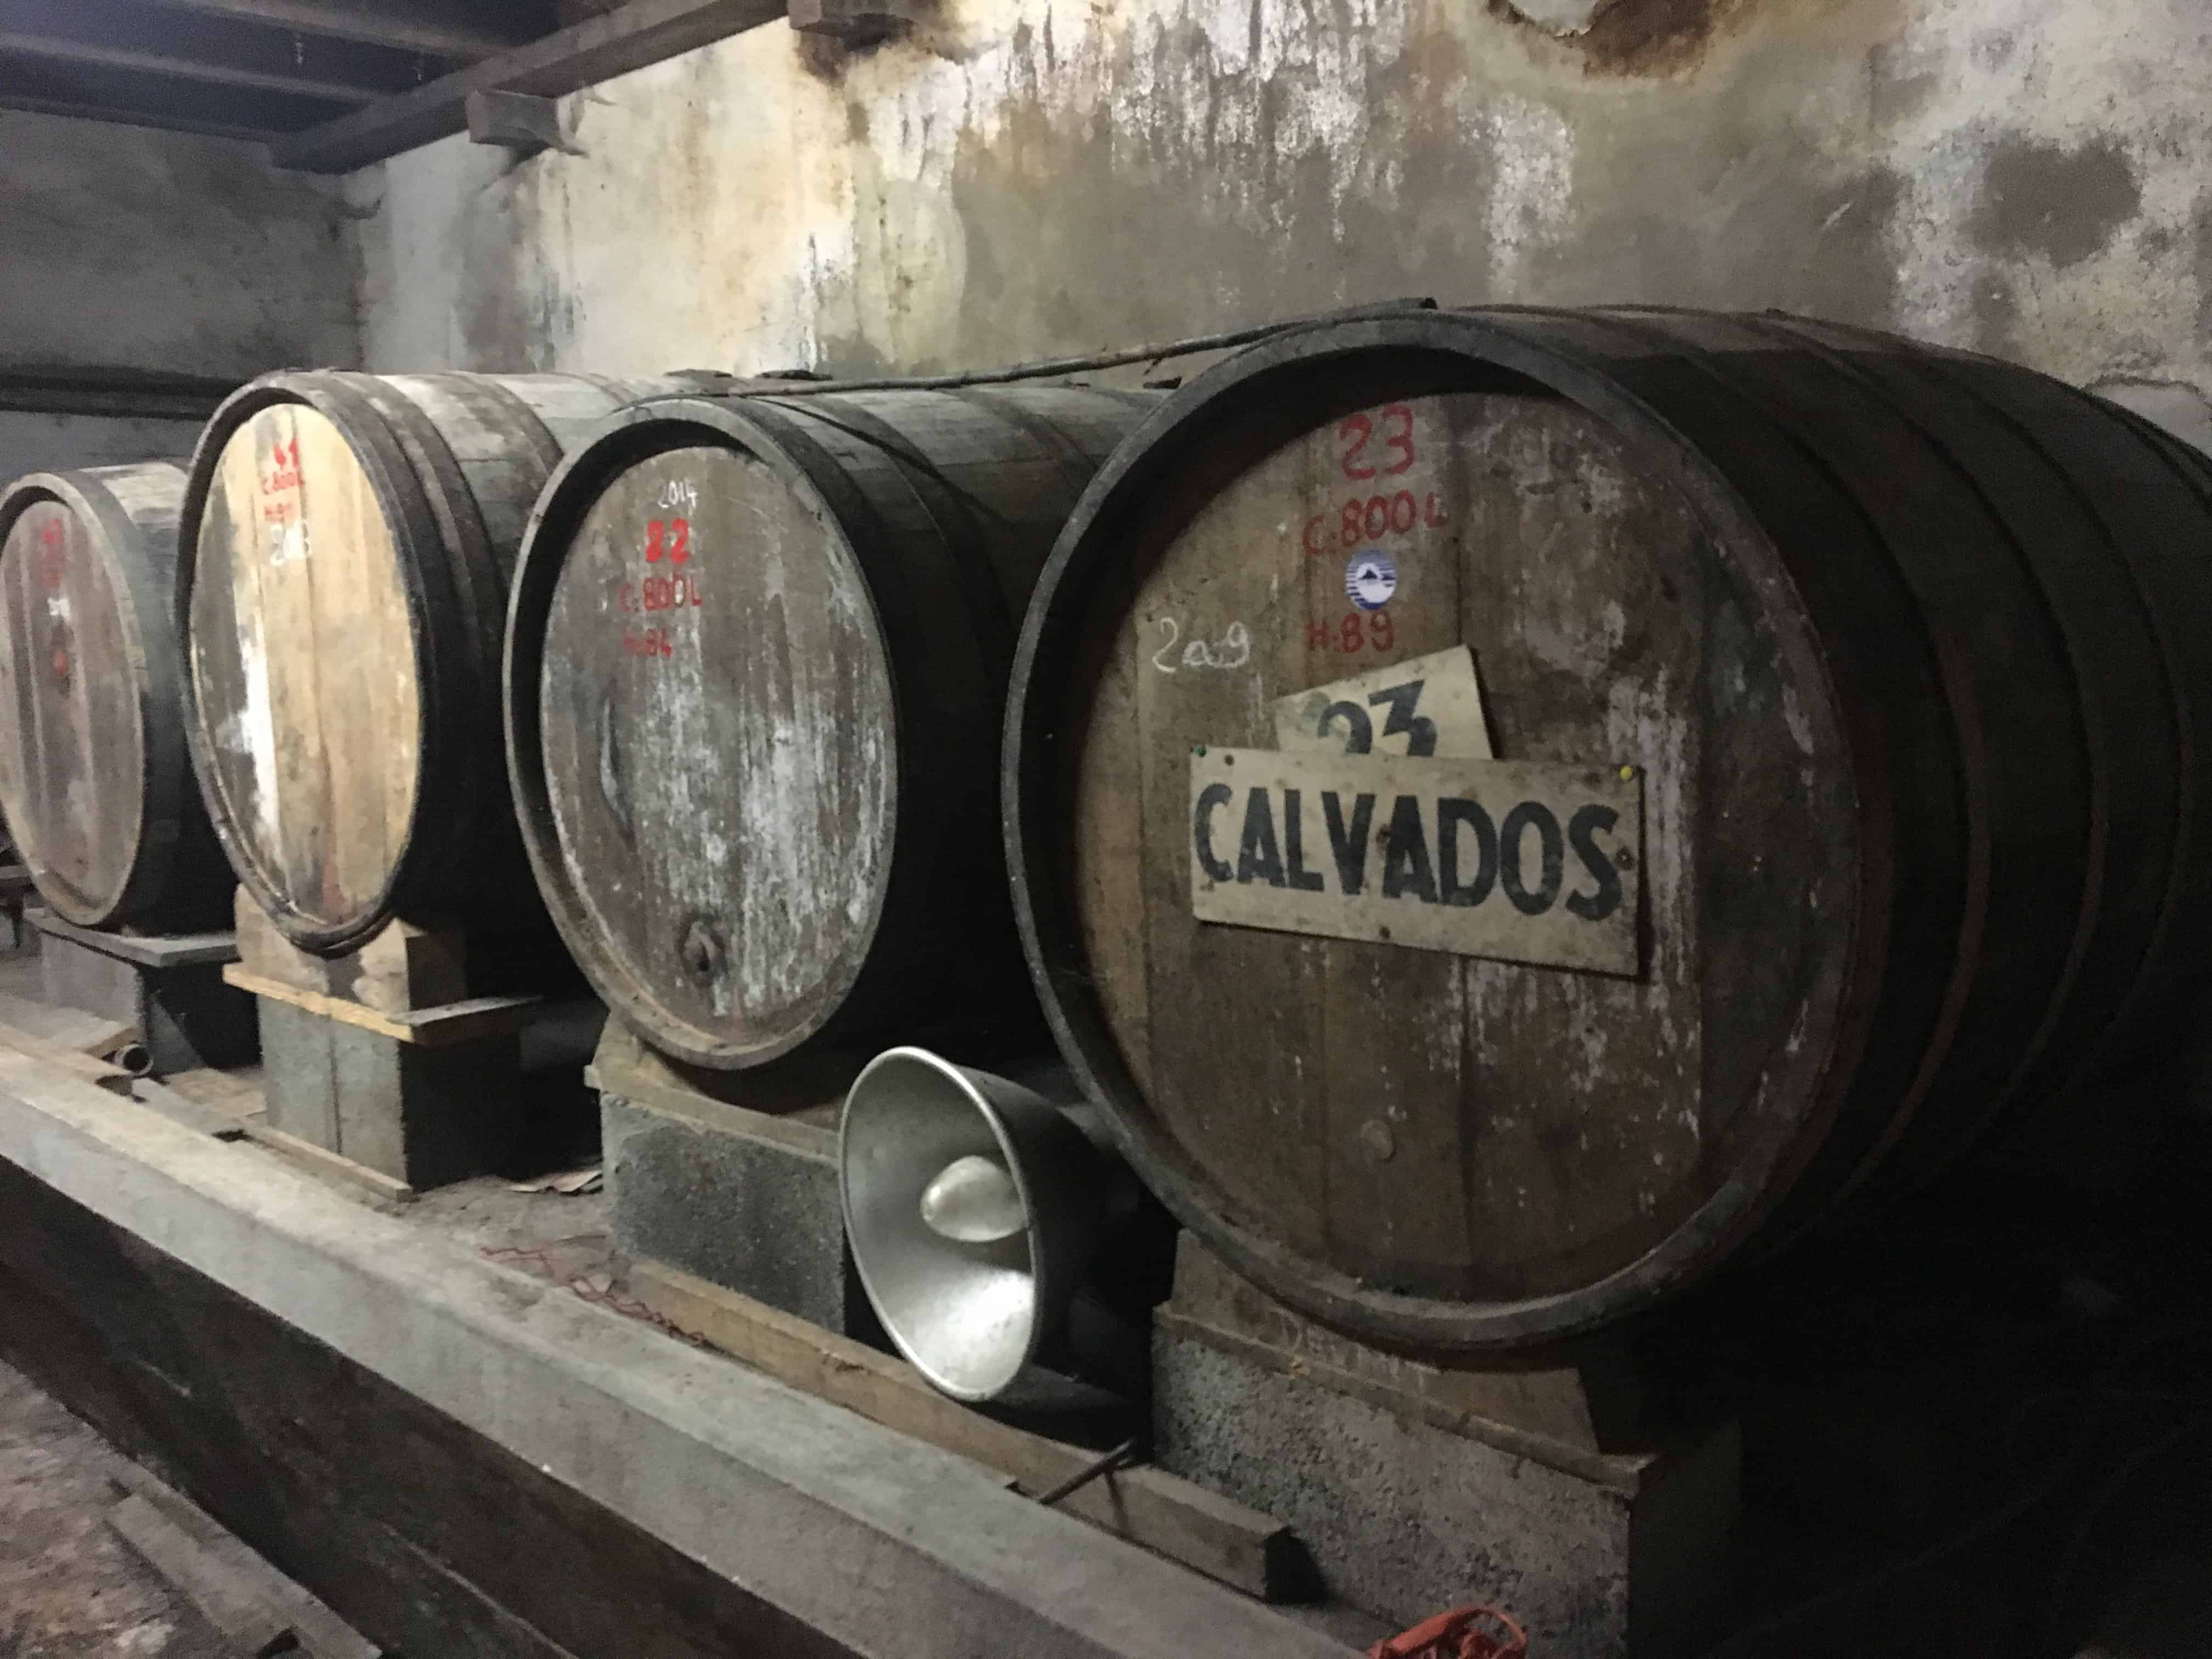 Normandy calvados kegs